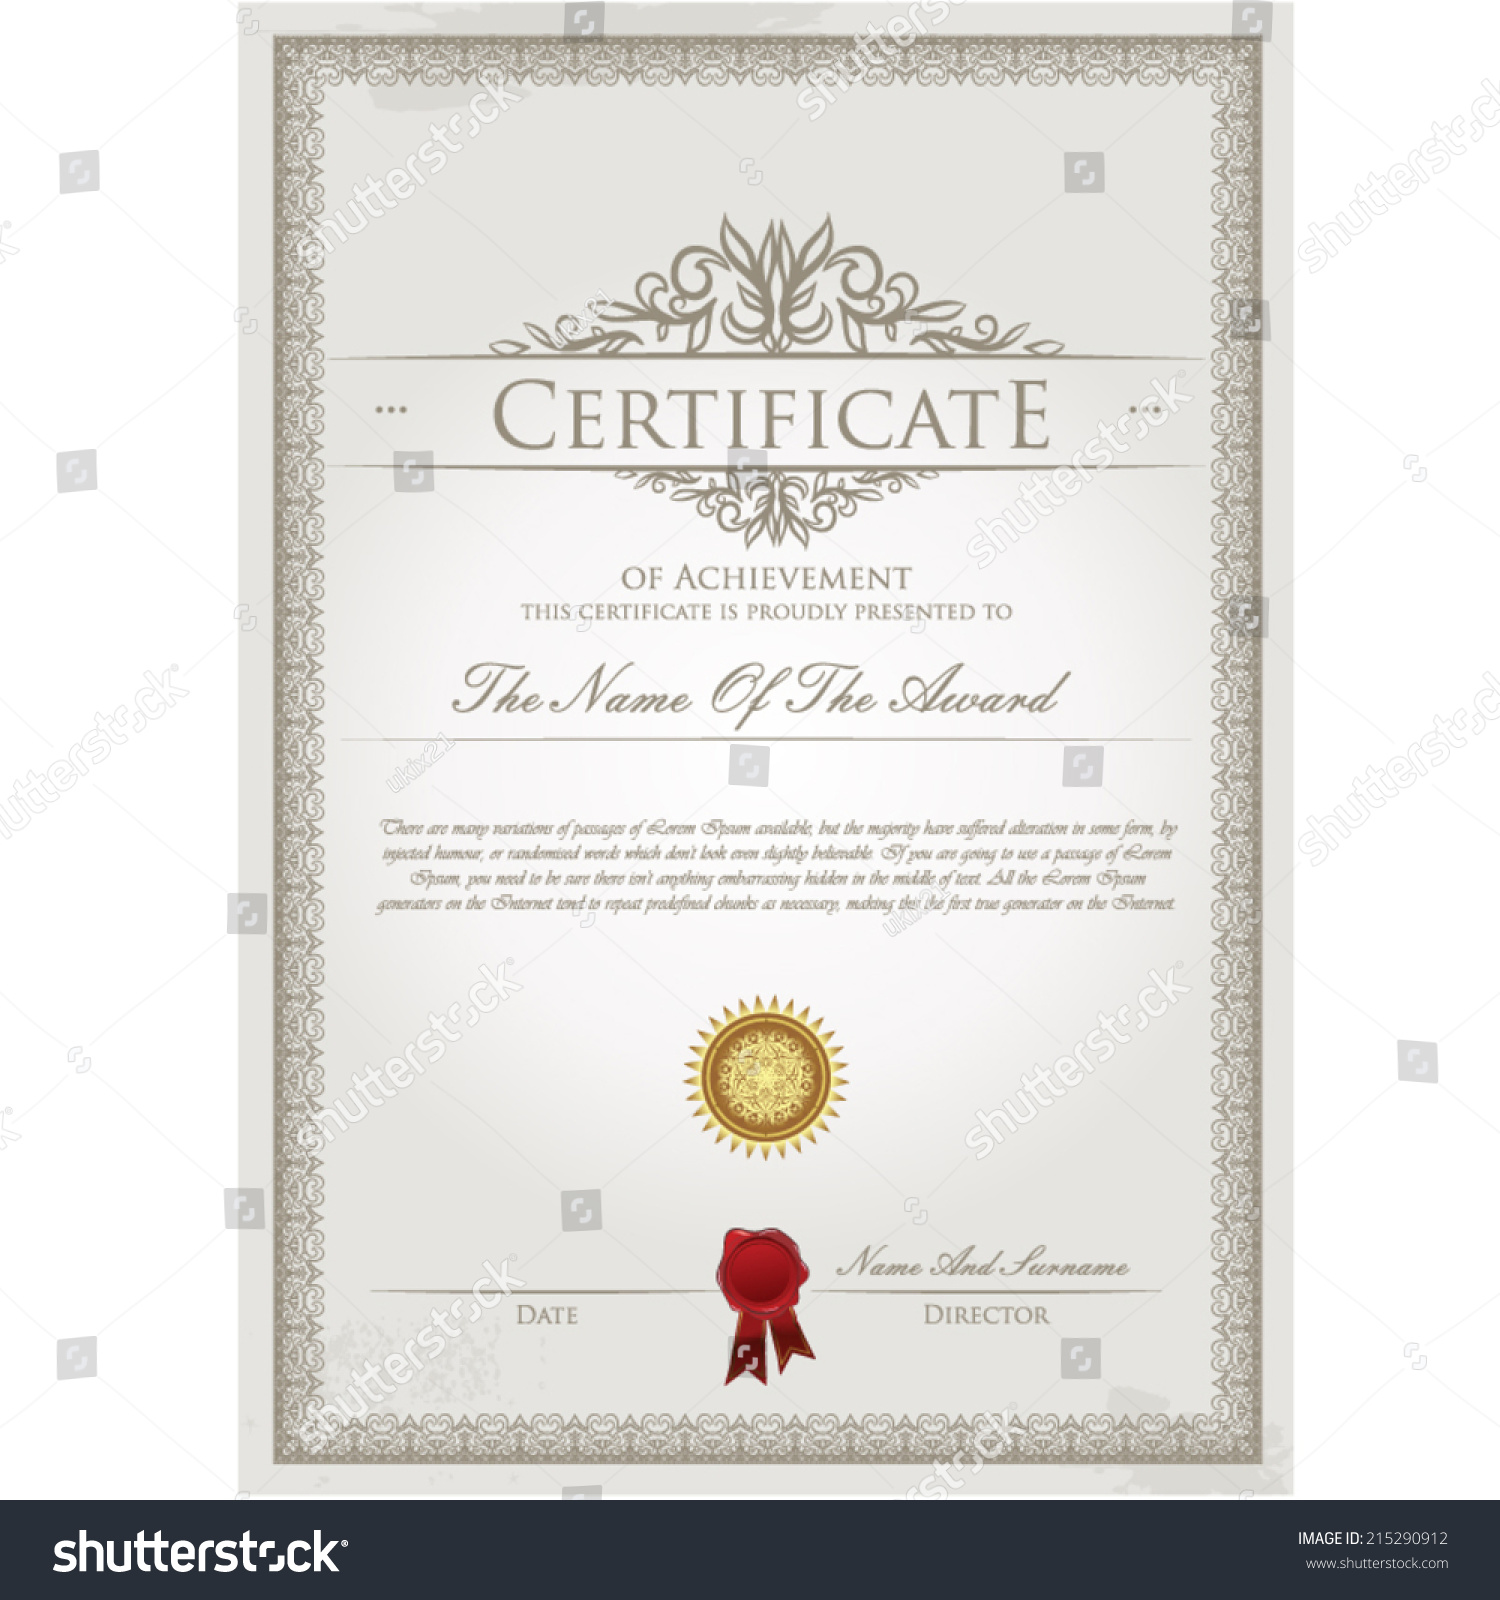 certificate template paralegal resume objective examples tig certificate template vector stock vector 215290912 shutterstock stock vector certificate template vector 215290912 stock vector certificate